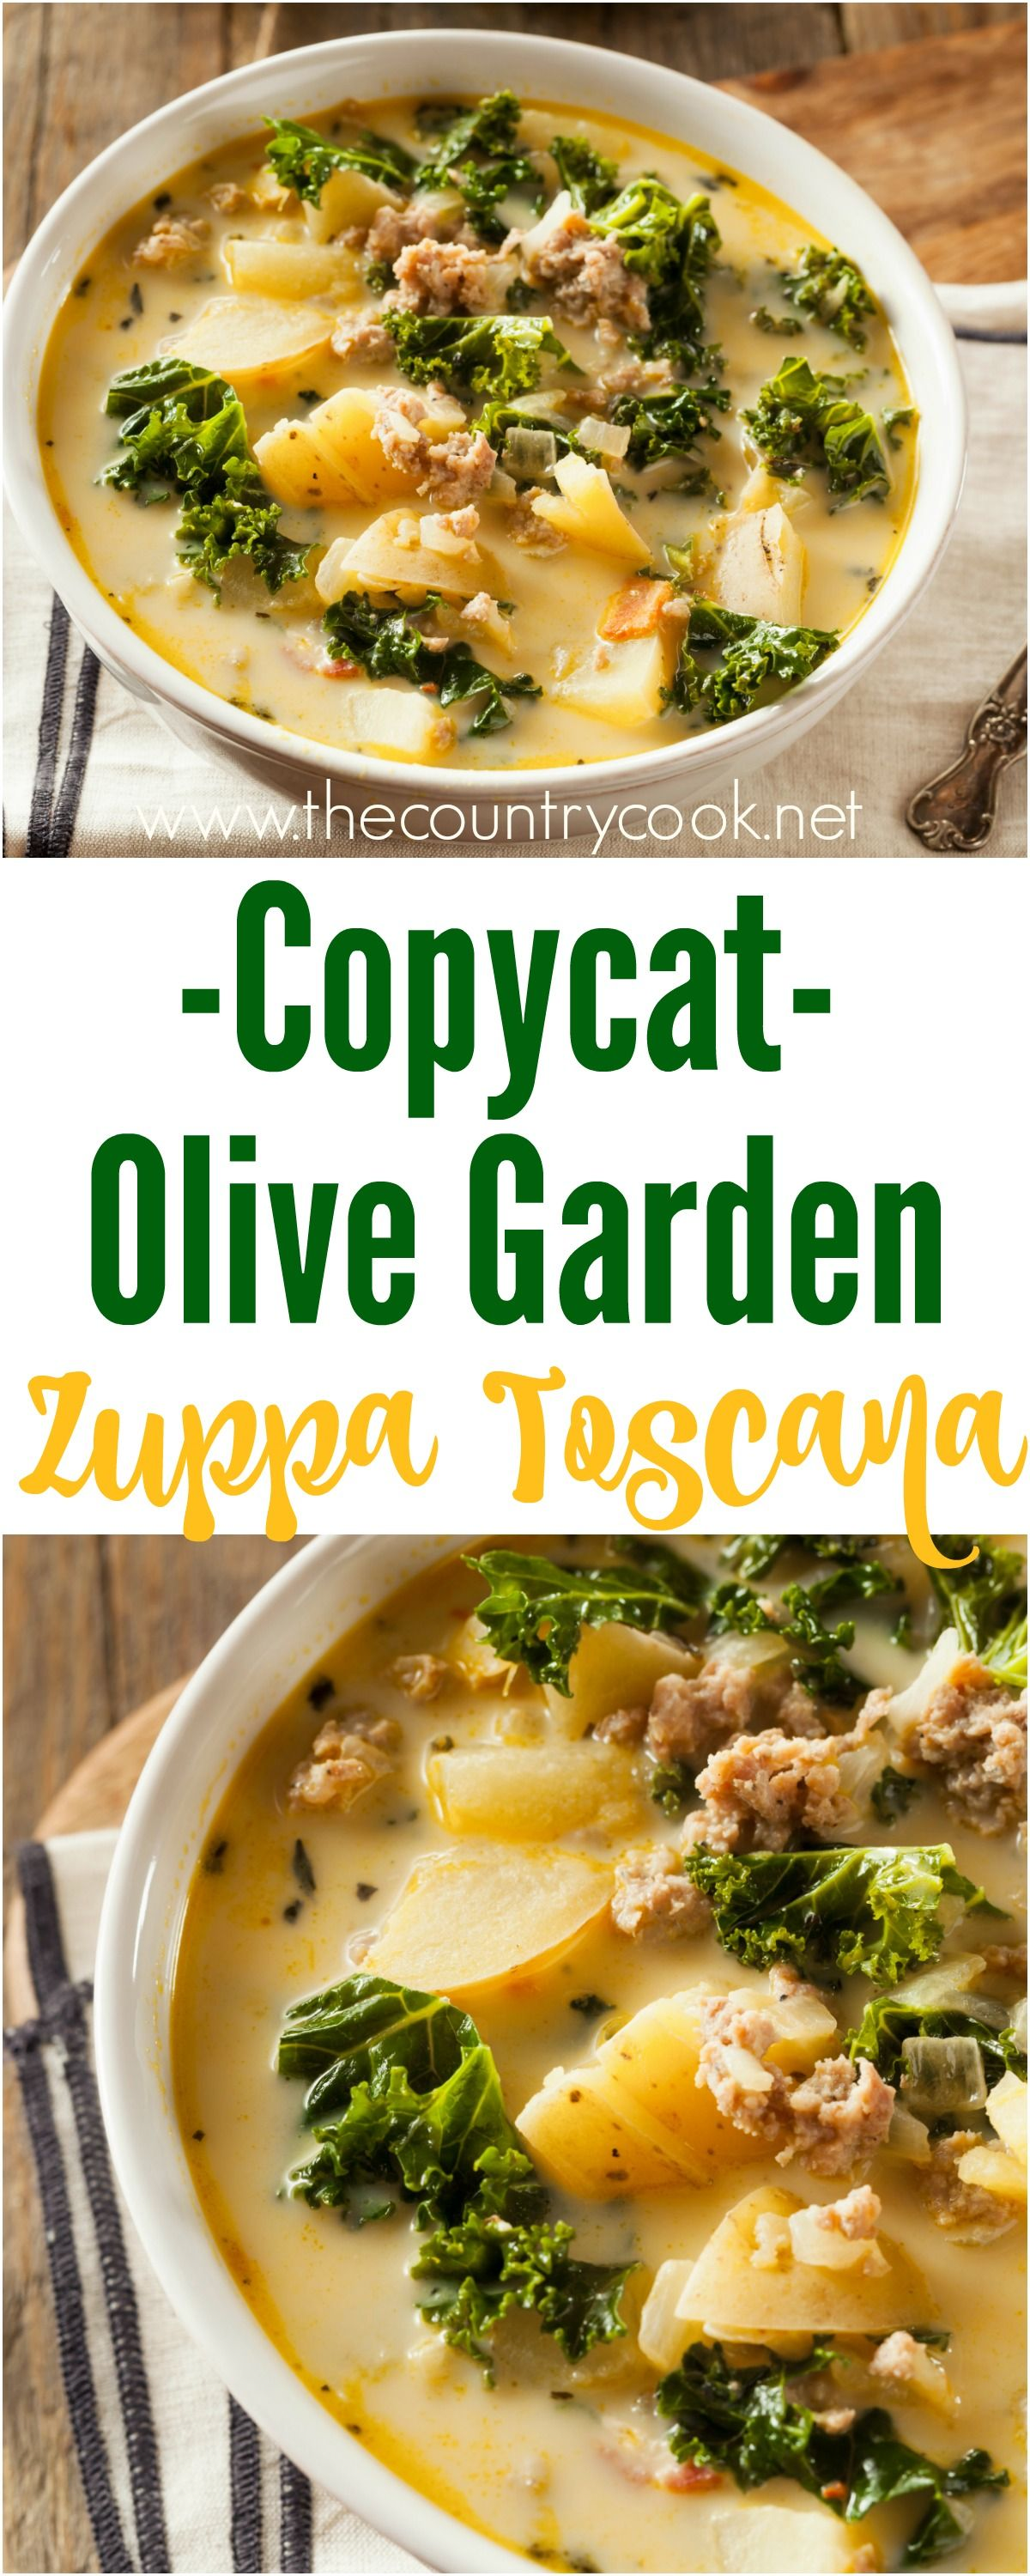 Copycat Olive Garden Zuppa Toscana recipe from The Country